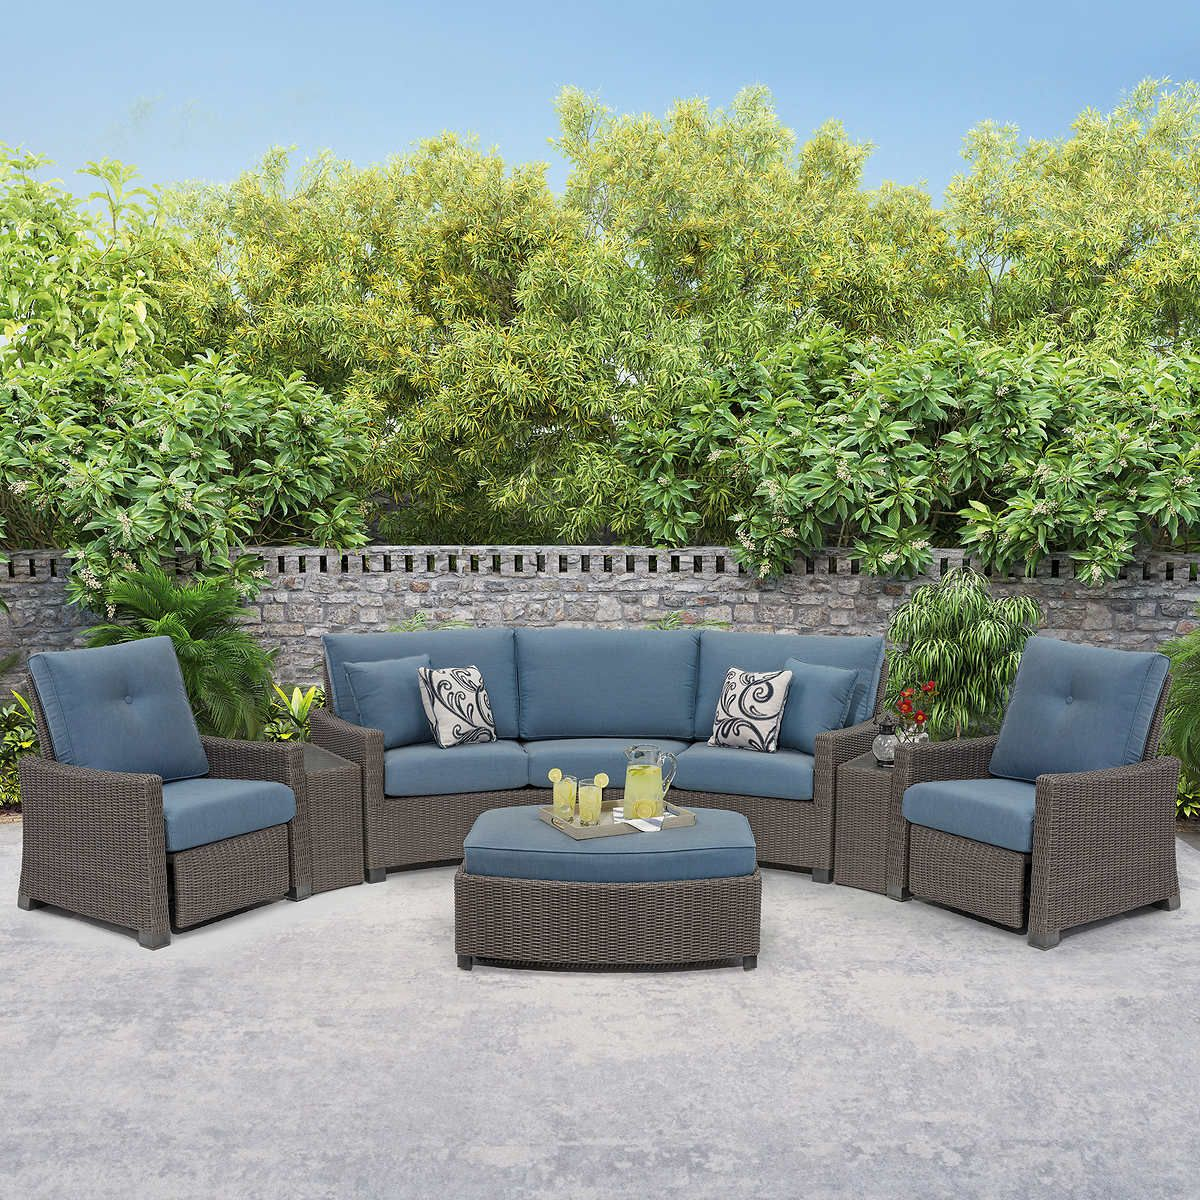 Barcalounger Stevens Point Theater Set In 2021 Lake House Patio Patio Remodel Modern Wicker Patio Furniture